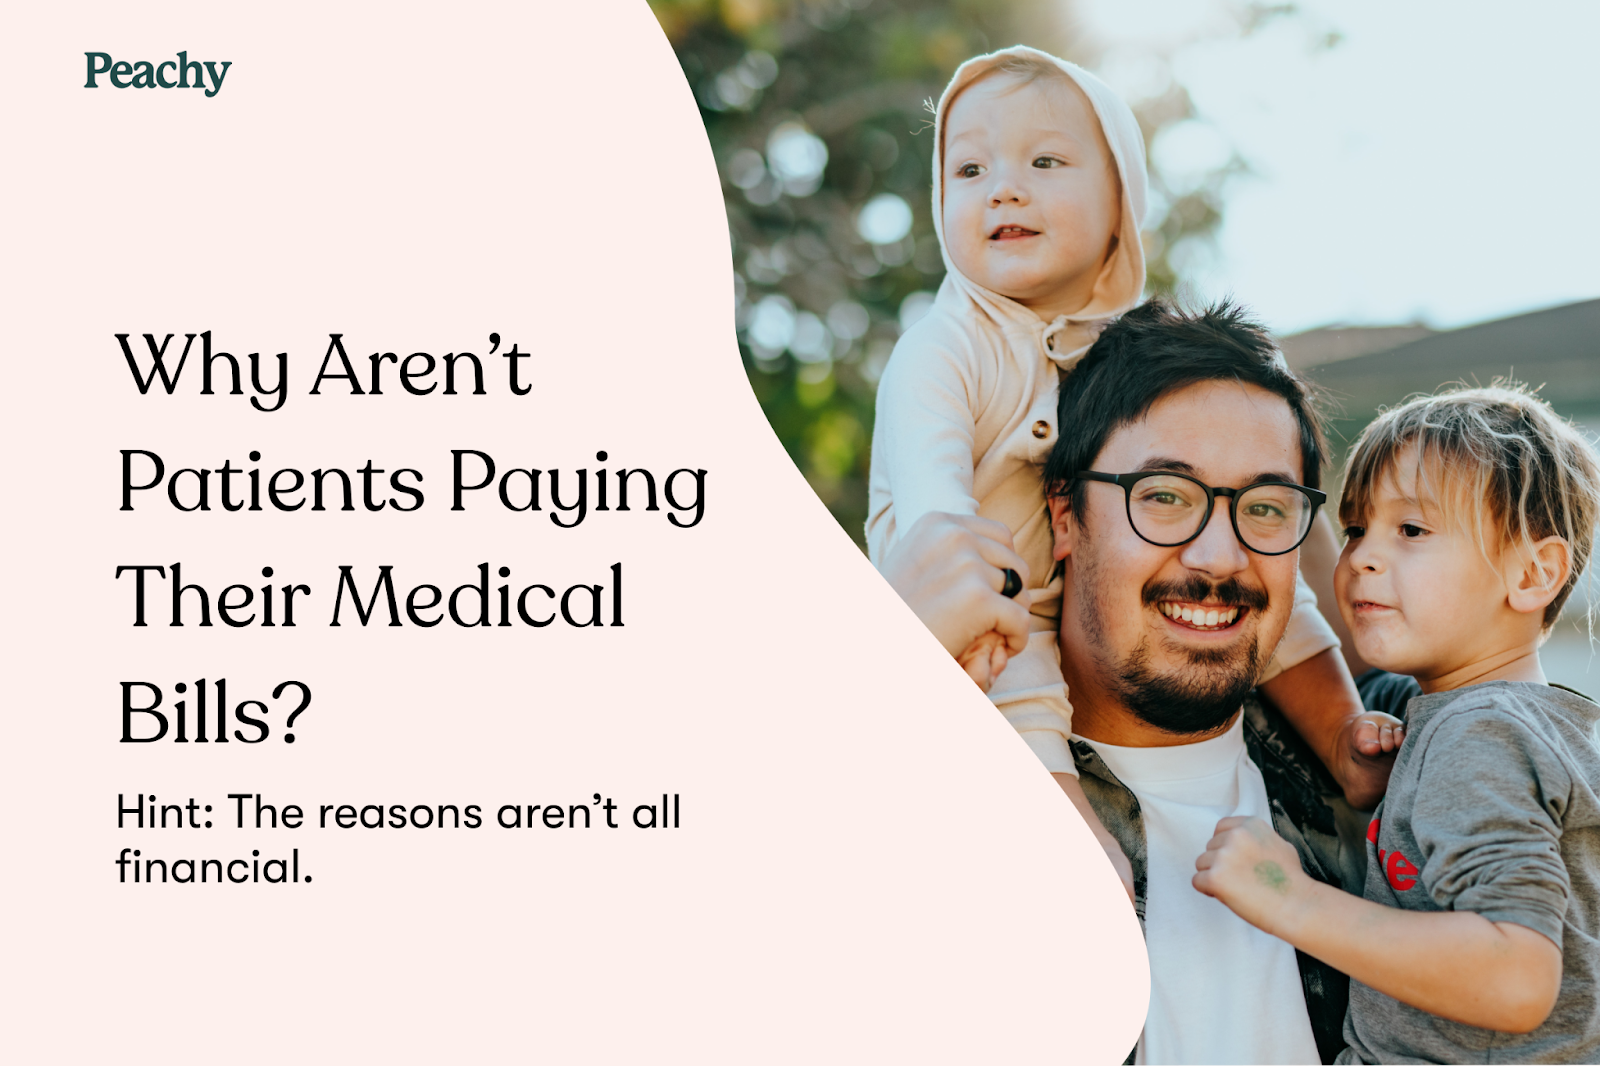 Why Aren't Patients Paying Their Medical Bills?